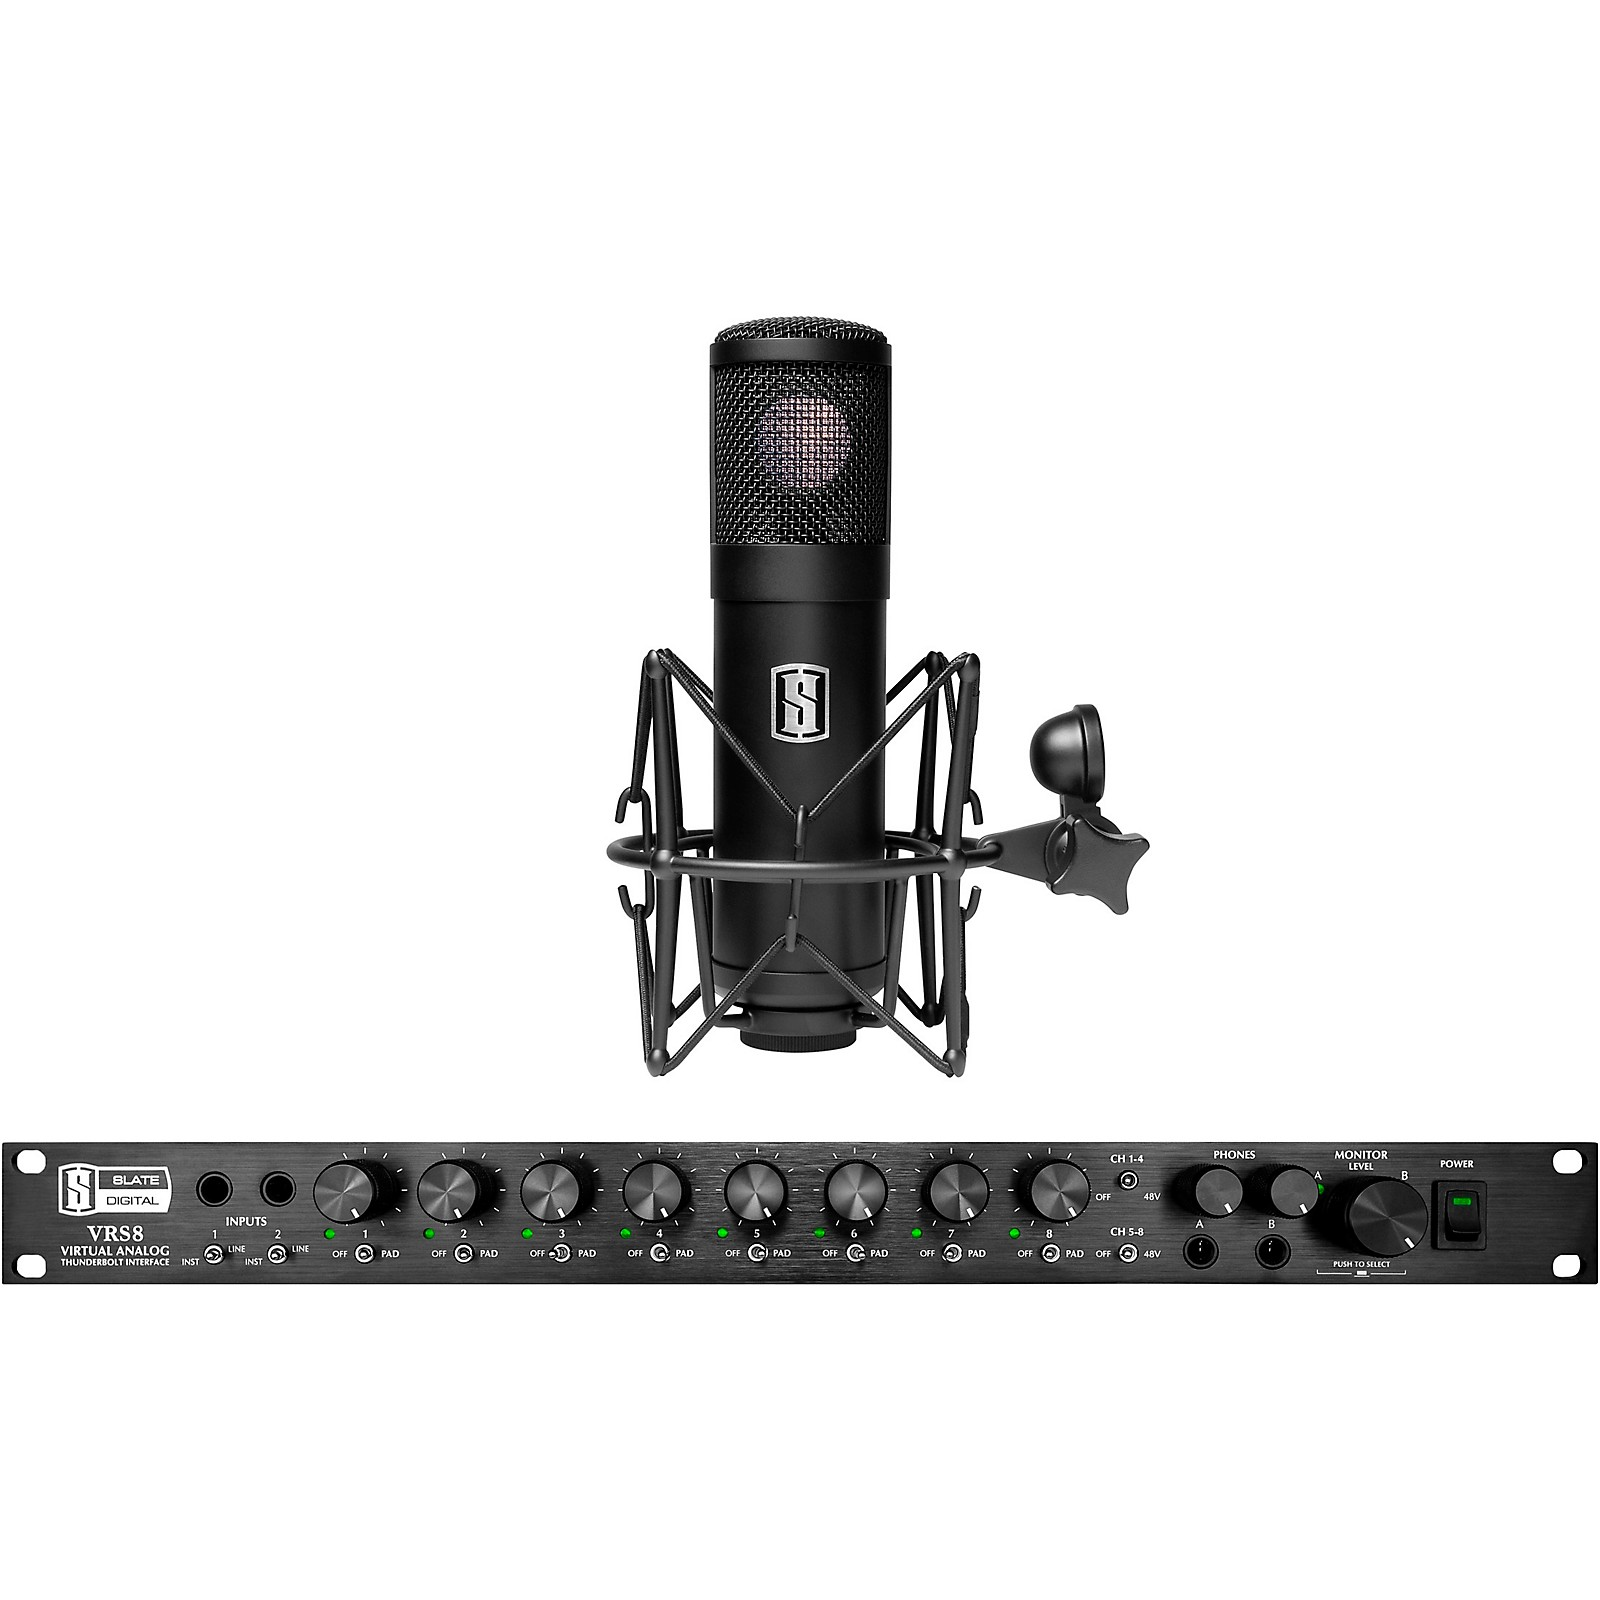 Slate Digital VRS8 Thunderbolt Audio Interface with Free ML-1 Large-Diaphragm Modeling Microphone